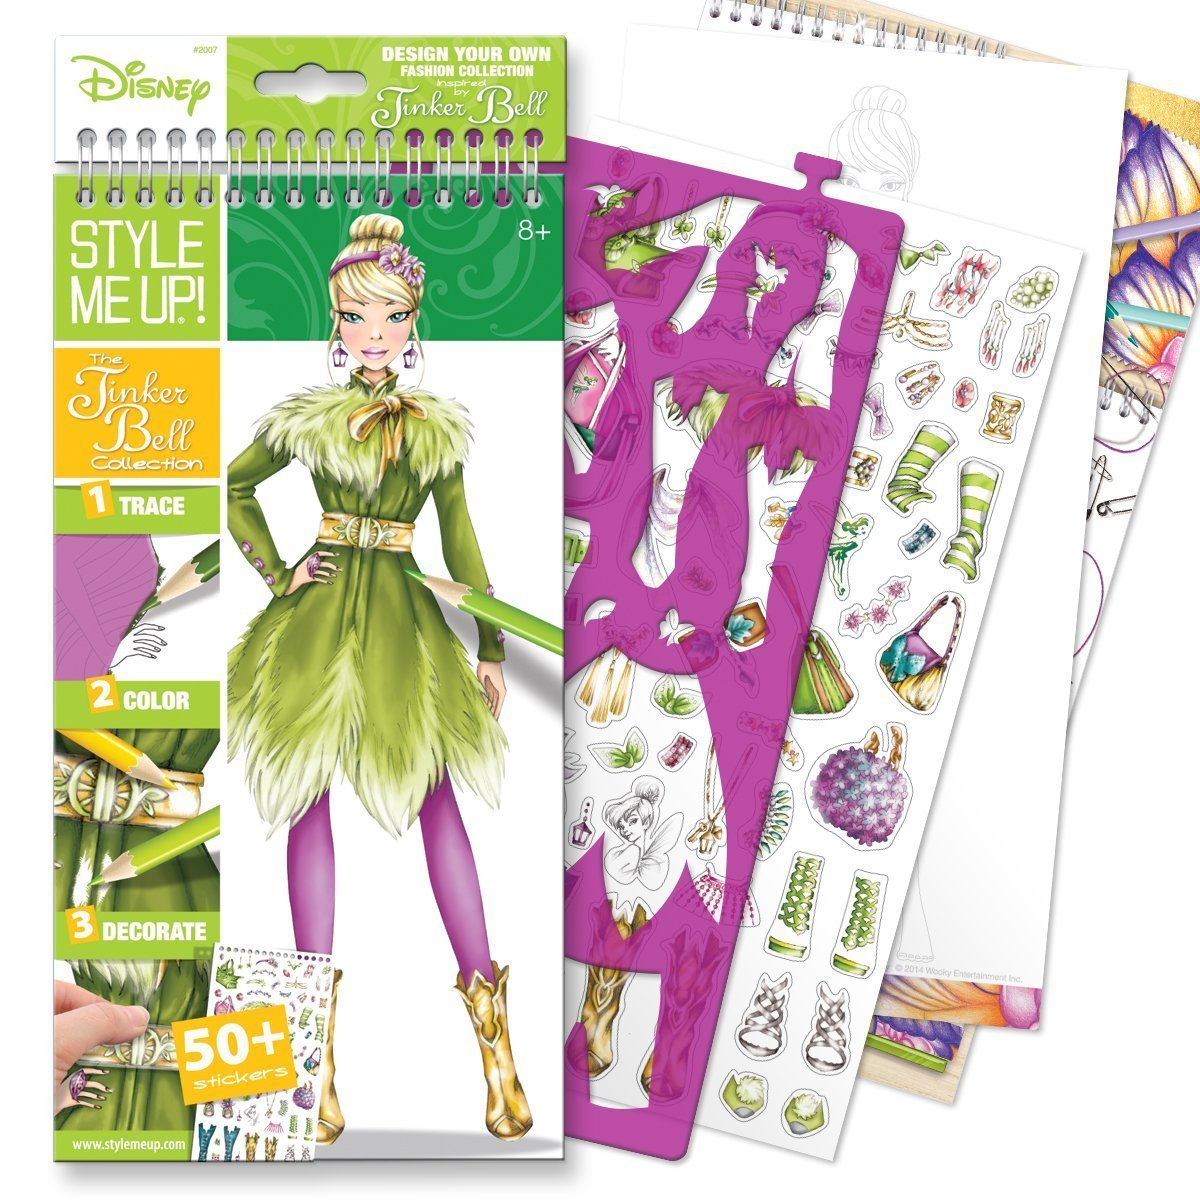 The Tinker Bell Collection Small Sketchbook English Design Your Own Fashion Collection Inspired By Disney Characters The Tinker Bell Collection Includes By Style Me Up Ship From Us Walmart Com